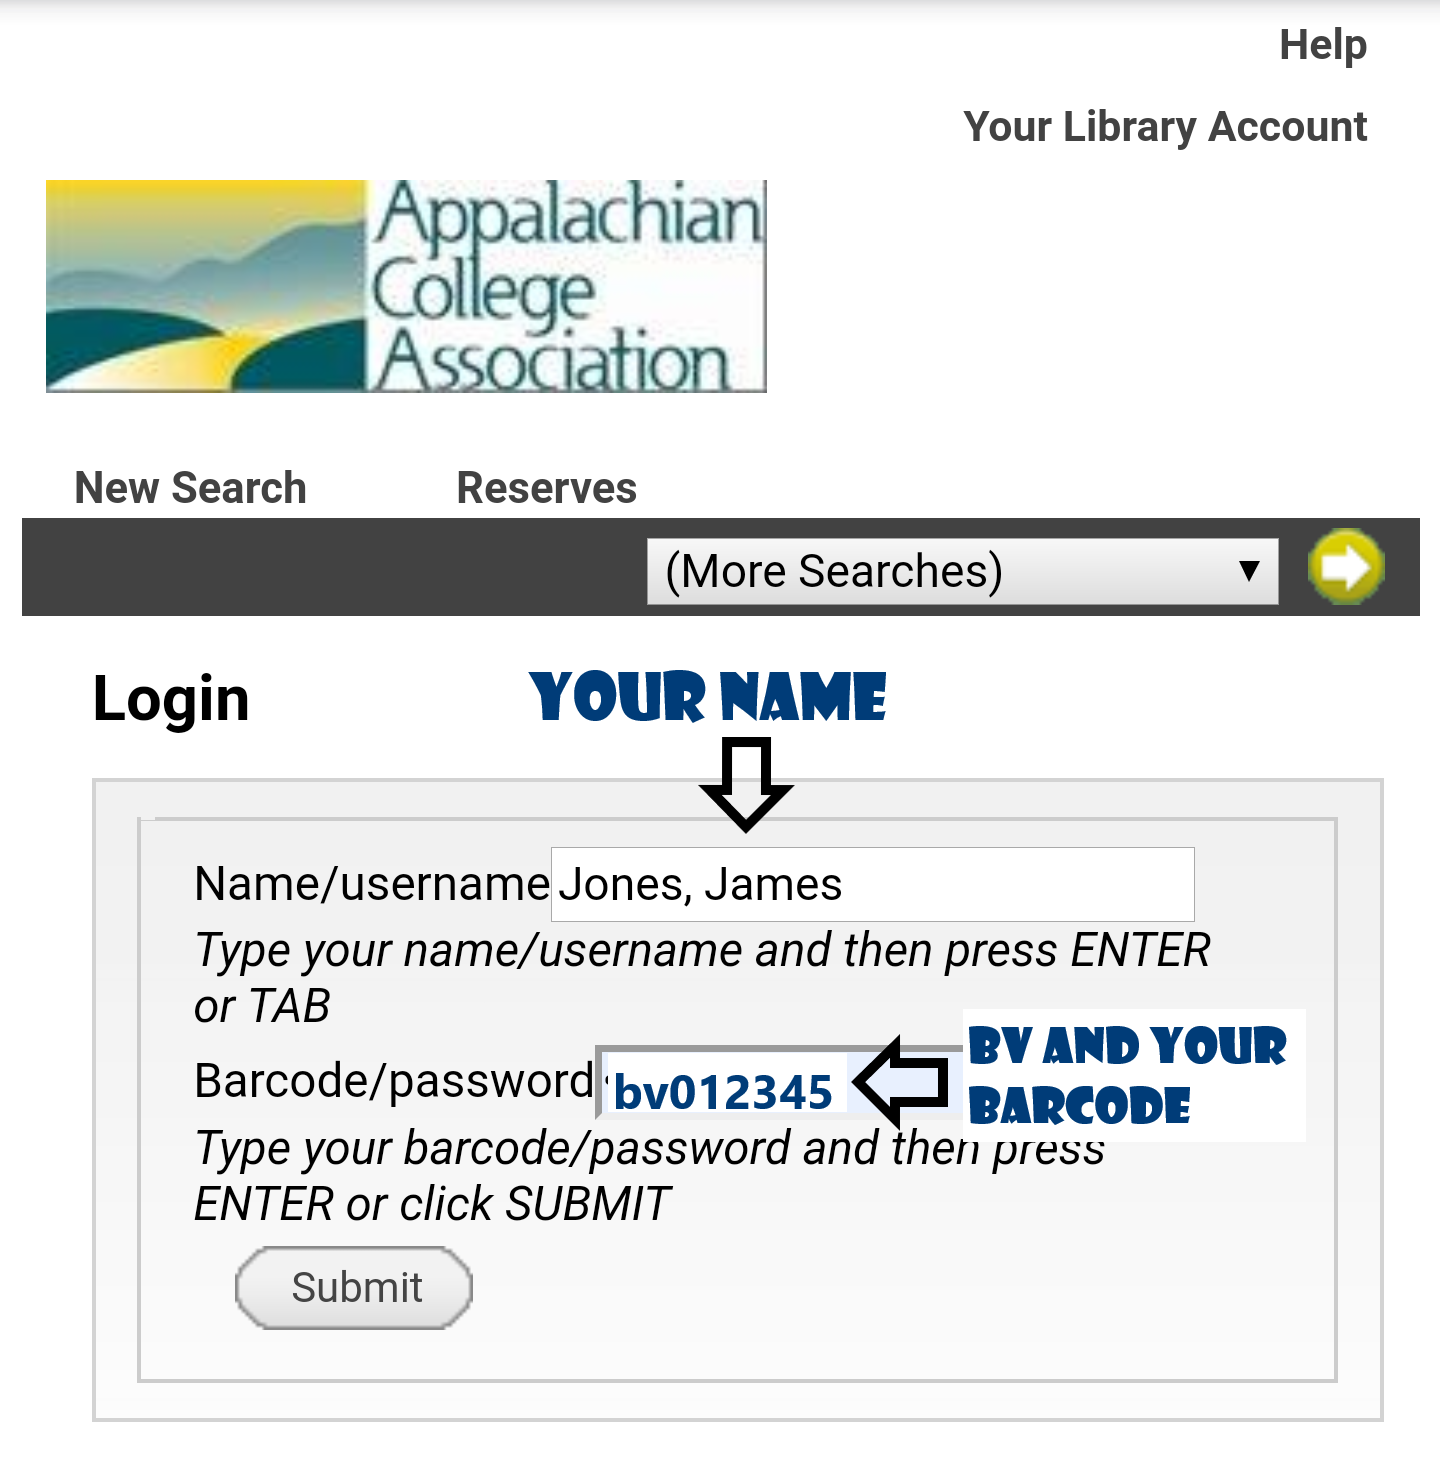 Username: your name, last name first. Password: lowercase bv followed by your 6-digit ID number (no spaces)